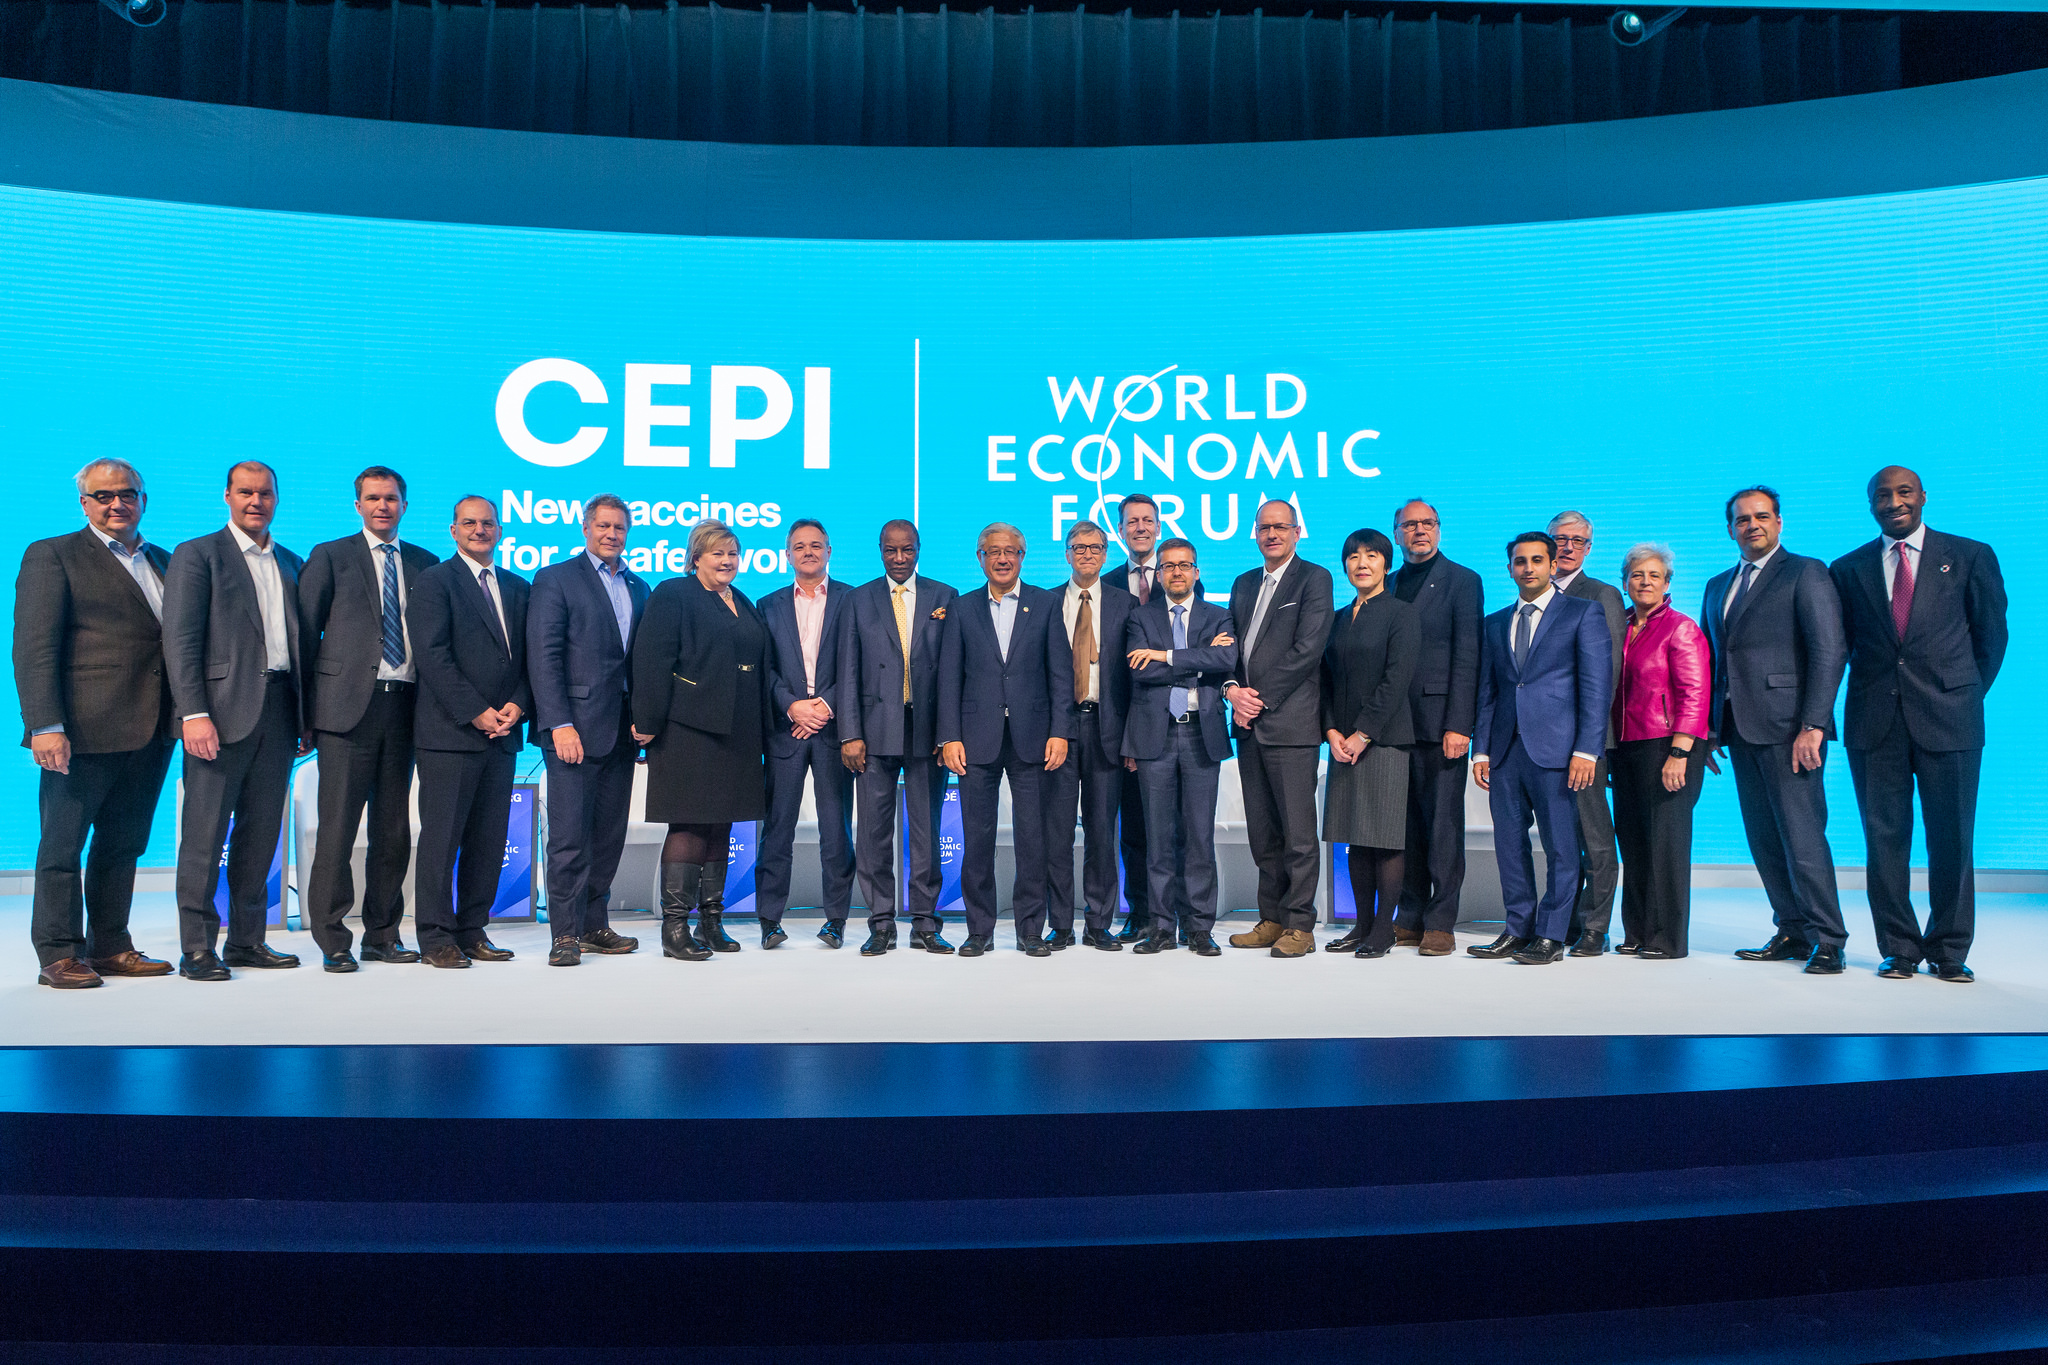 A global coalition to create new vaccines for emerging infectious diseases  – CEPI